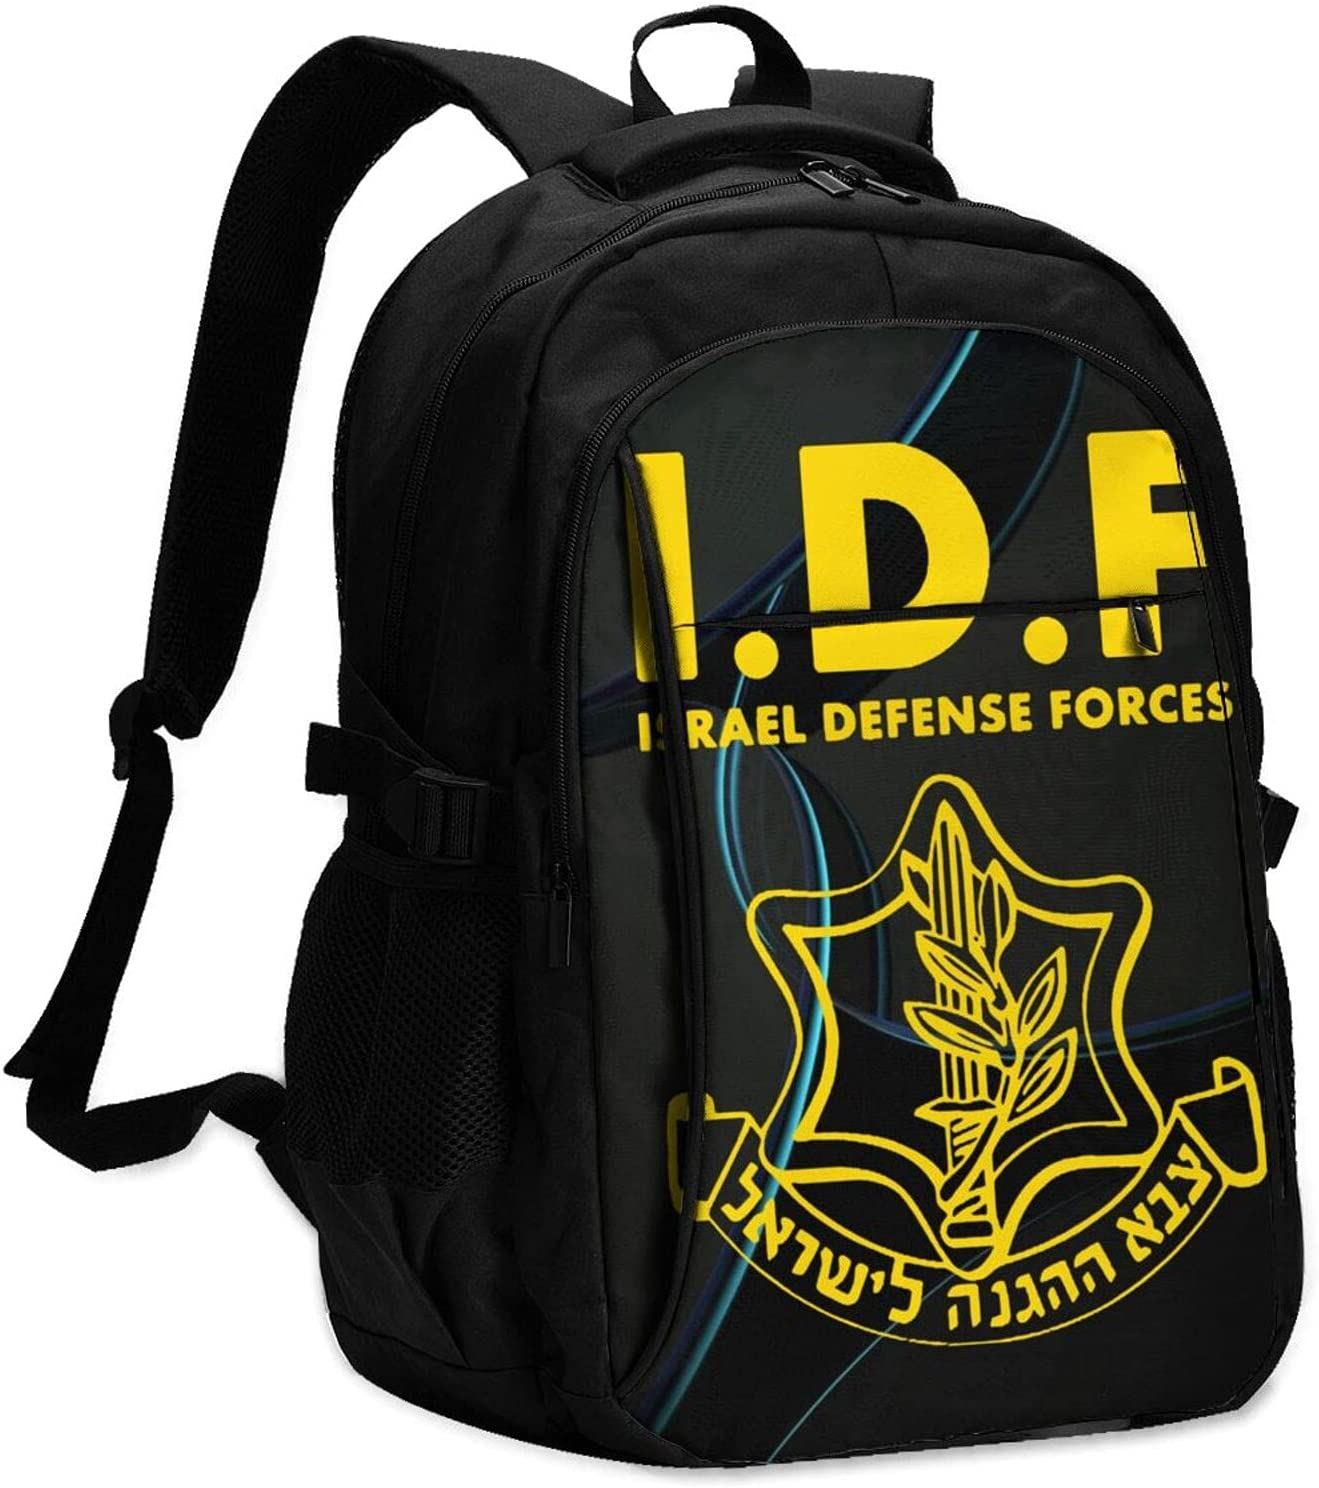 Idf Israeli Defense Force Cheap sale Stylish Backpack Usb College With Max 85% OFF Char